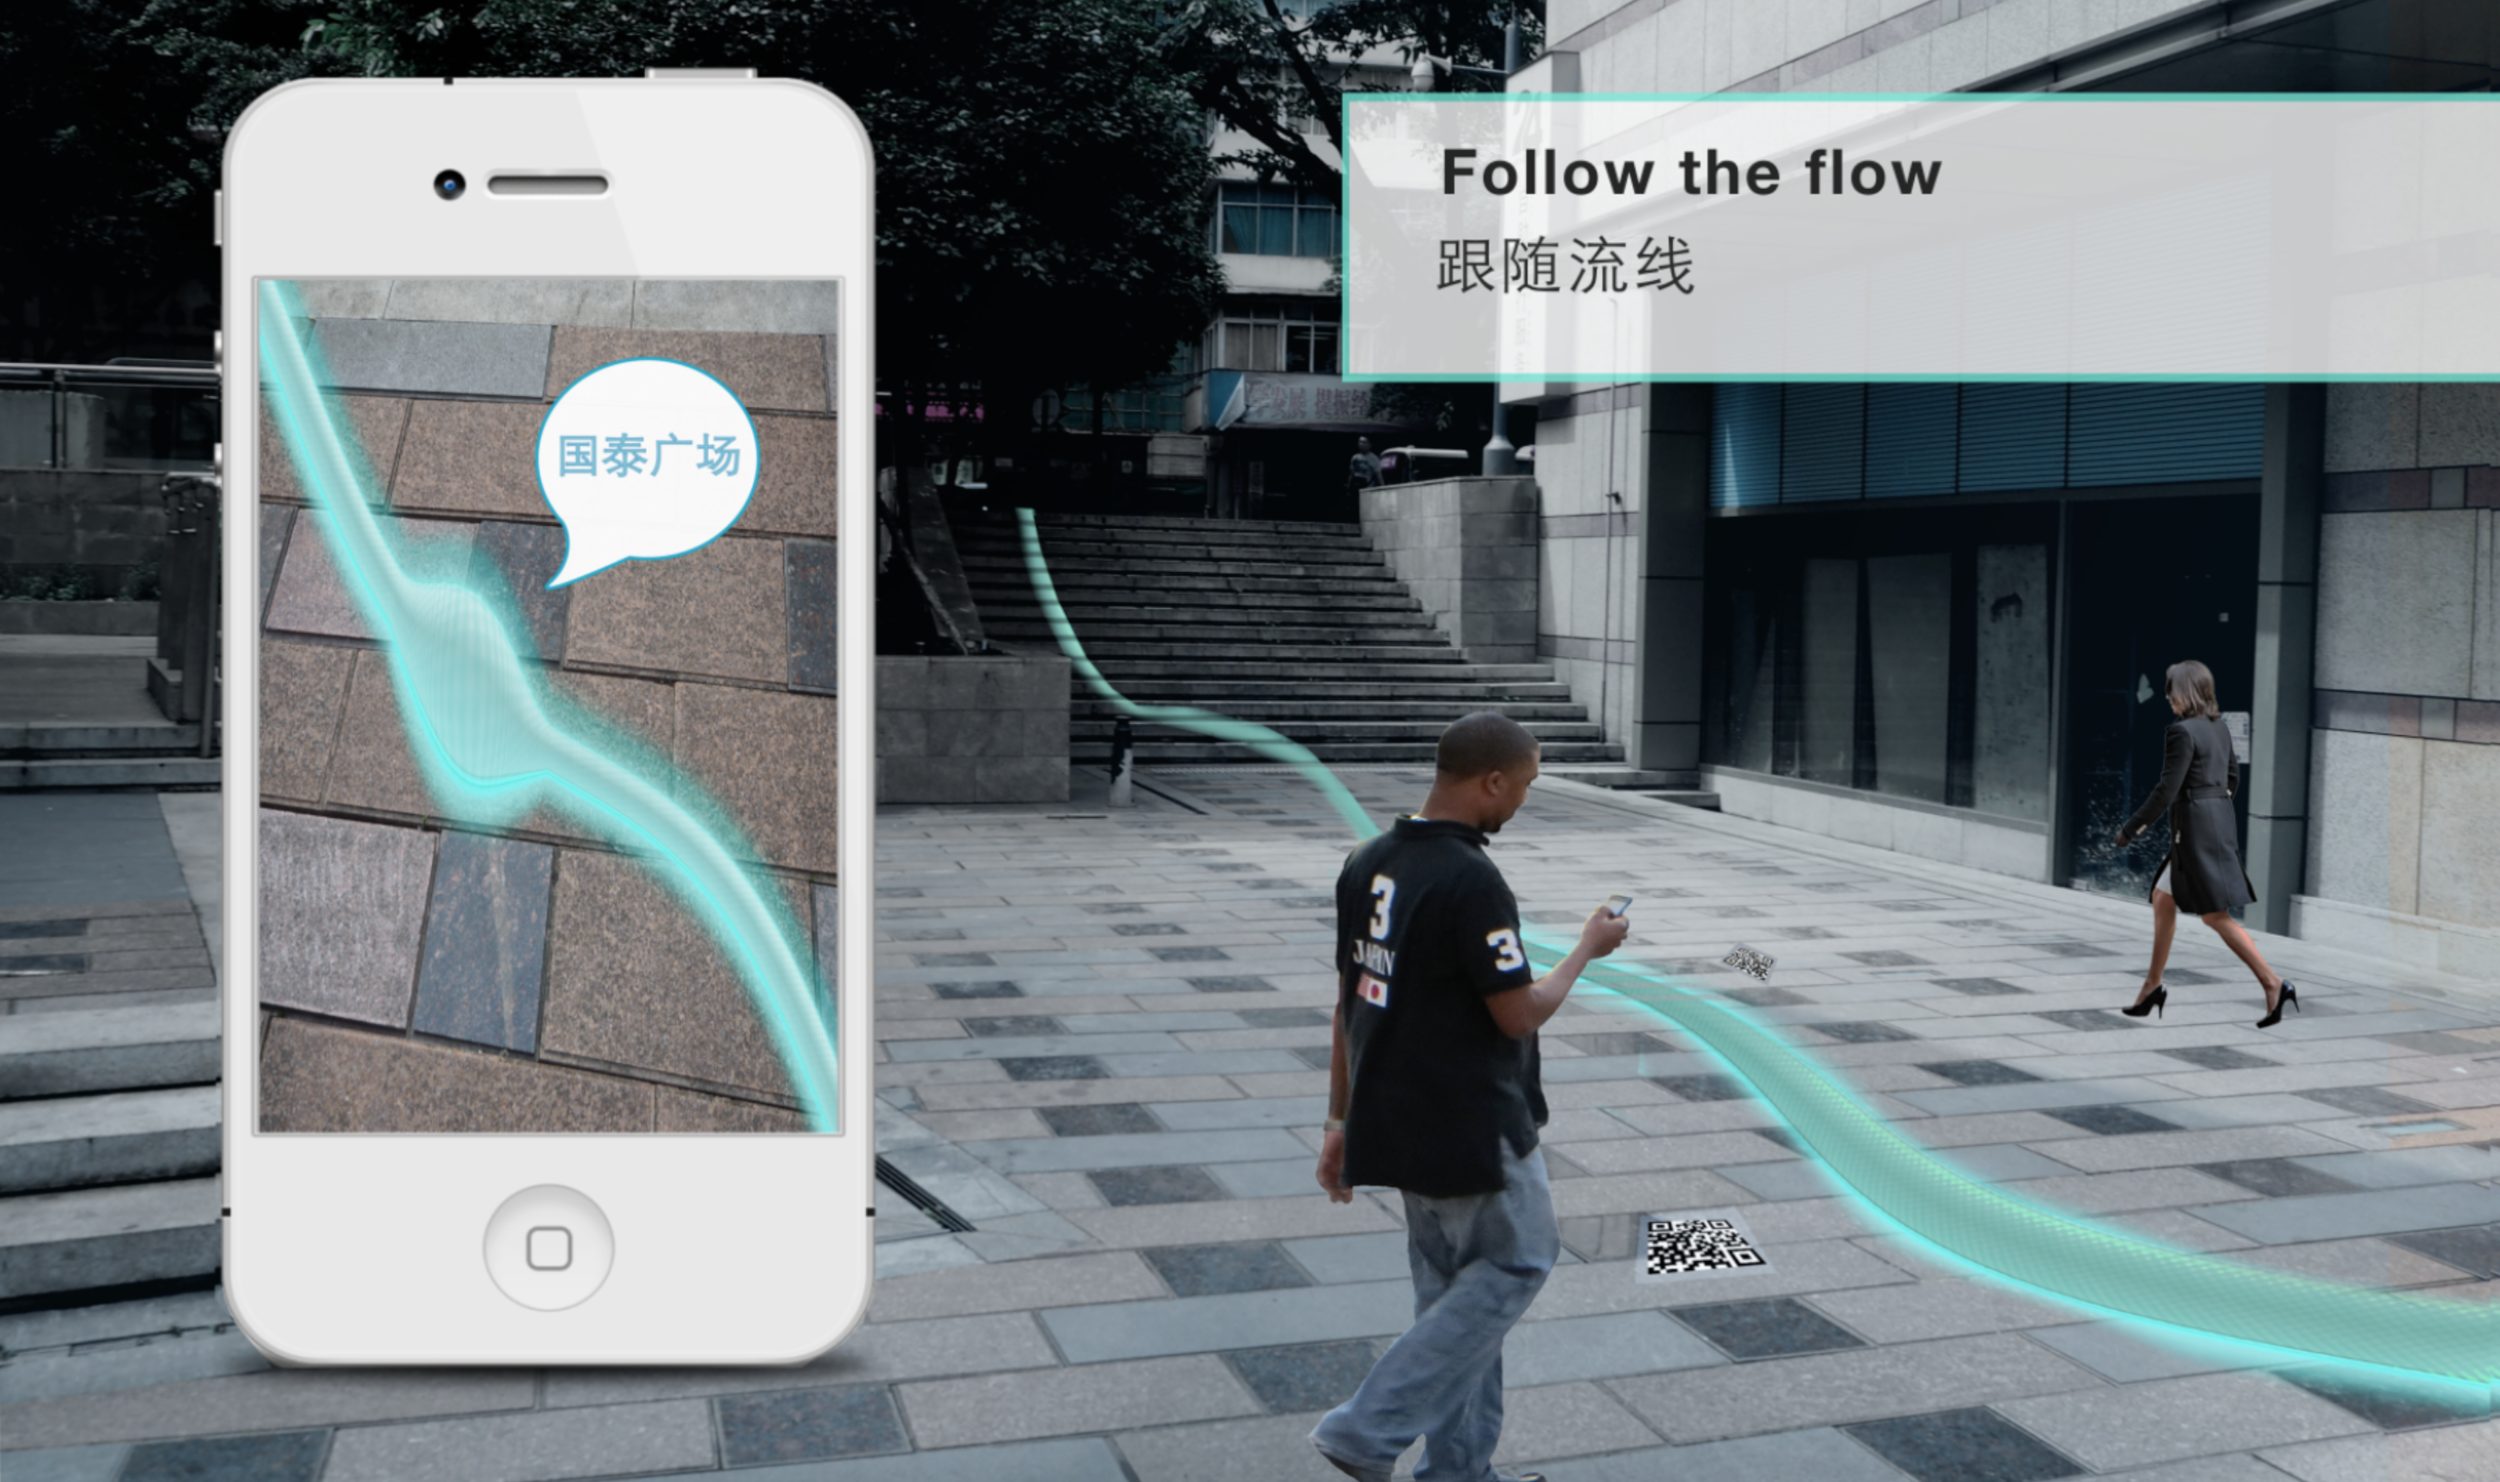 Connecting to the lines via augmented reality through we chat leads users to their desired destination.